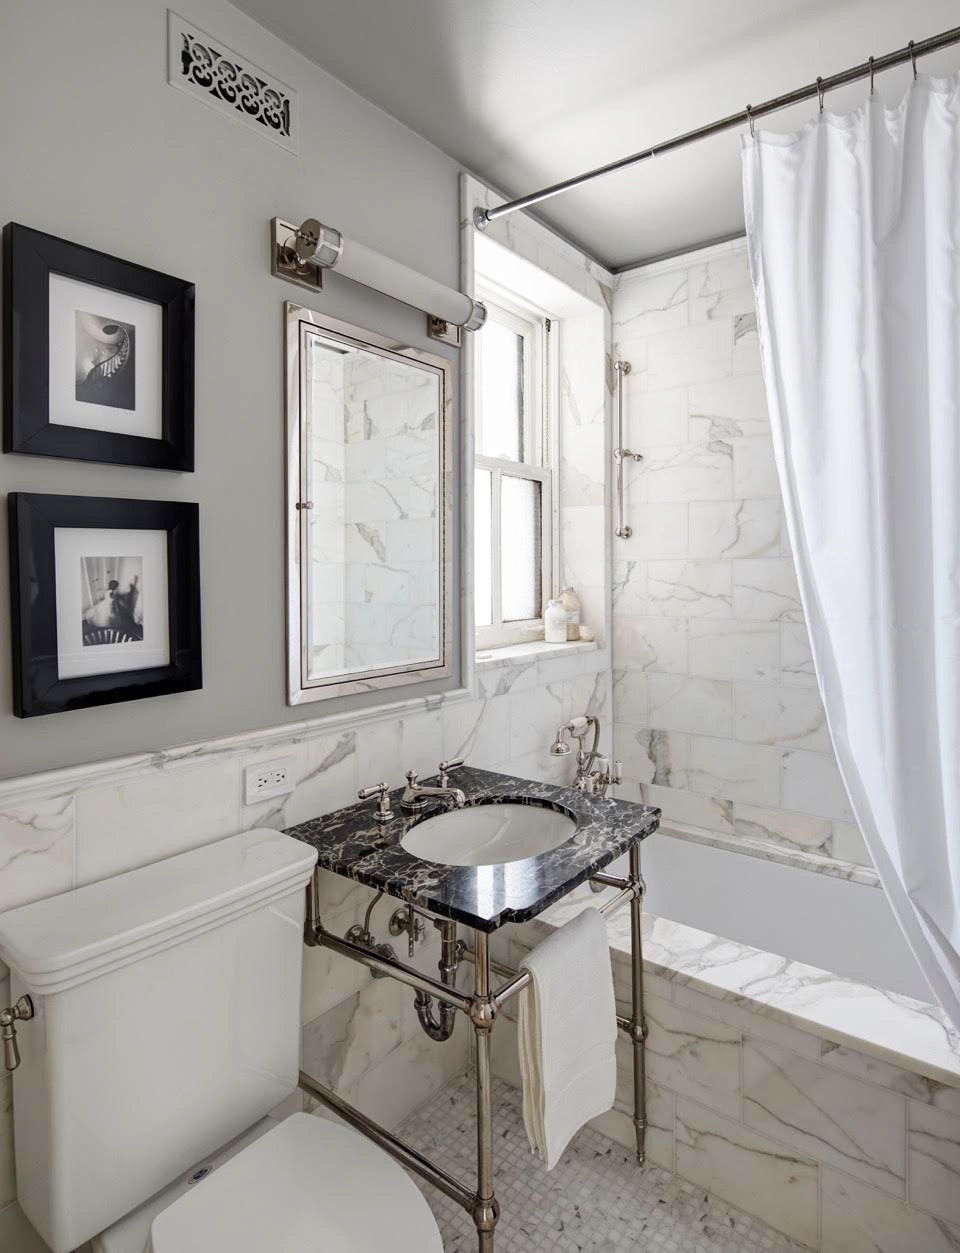 5 Tips From an Elegant, Small-Space Bathroom